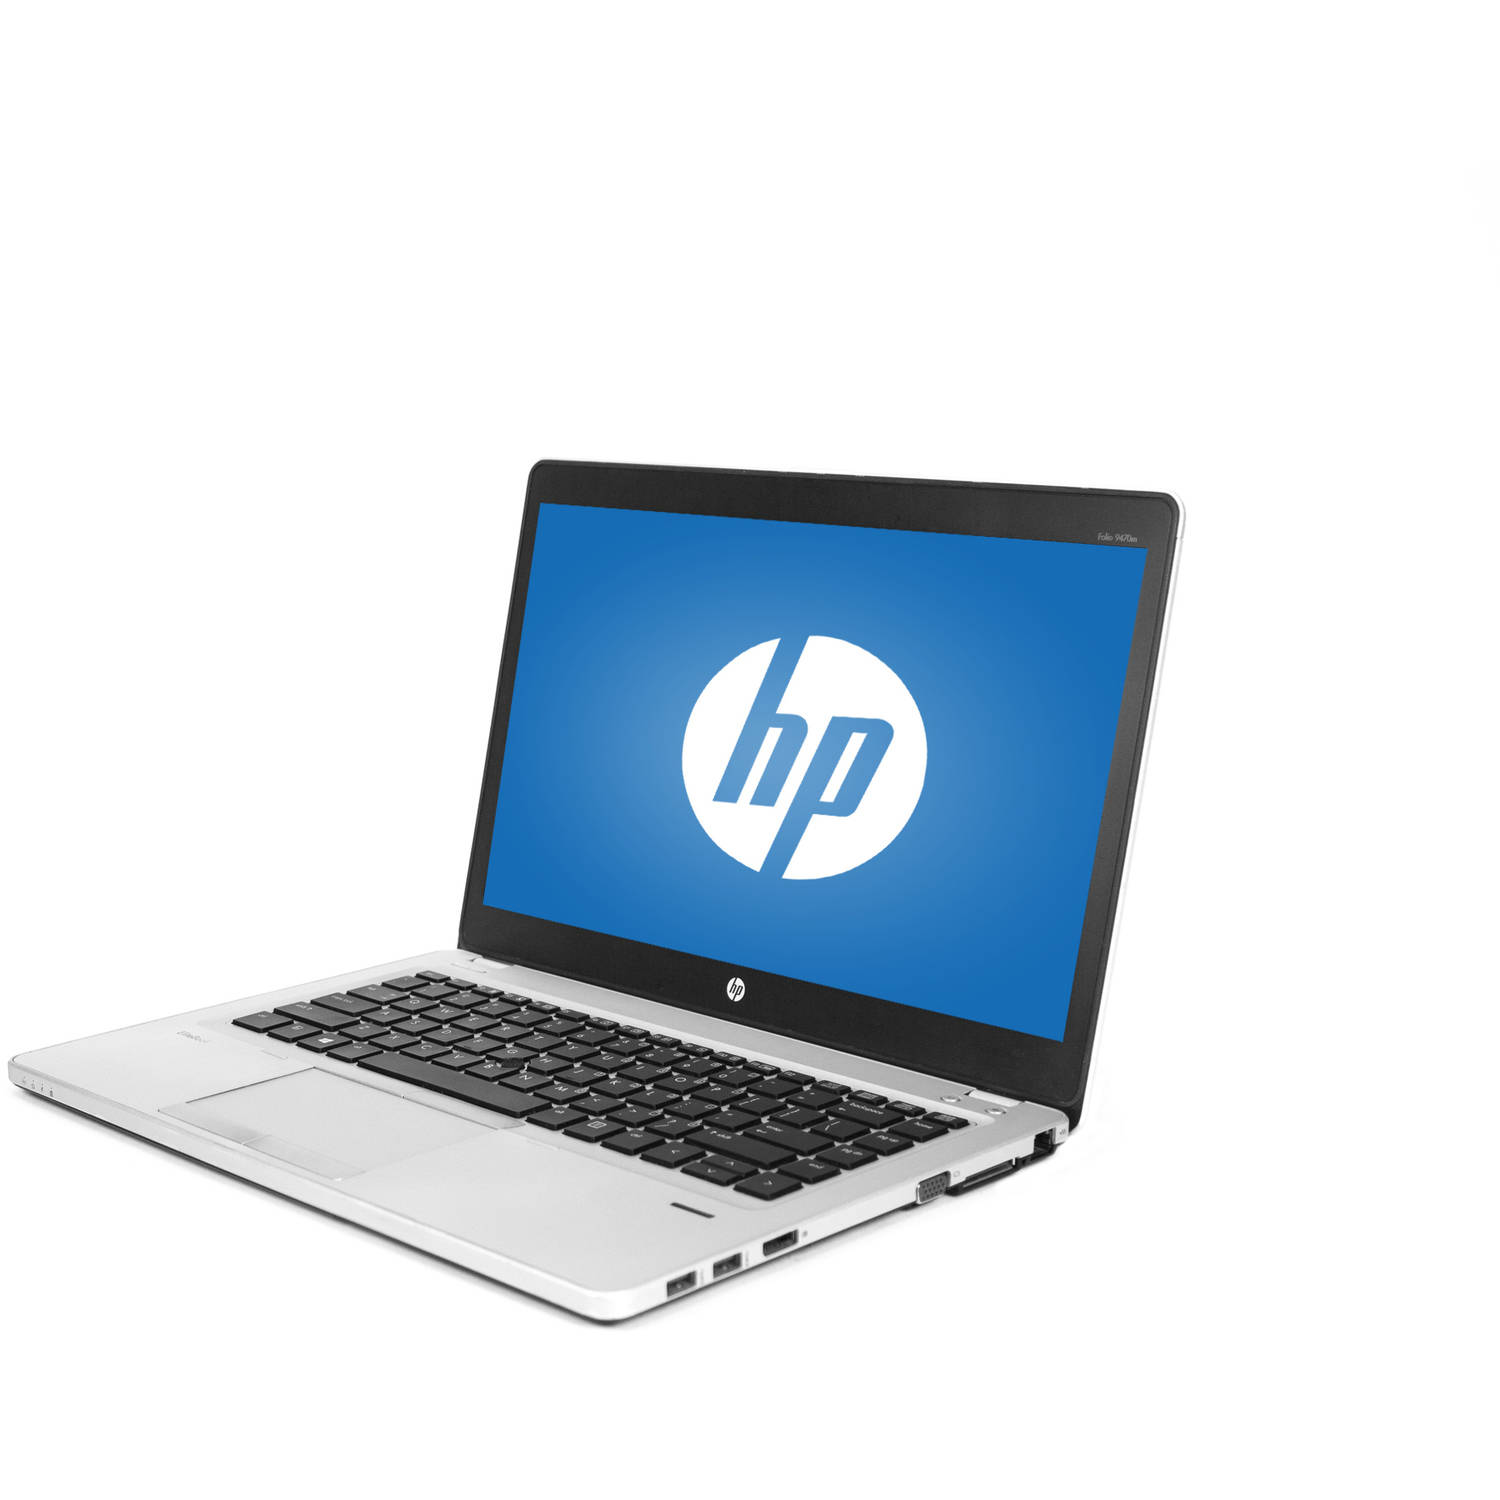 "Refurbished HP Ultrabook Silver 14"" EliteBook Folio 9470M WA5-1153 Laptop PC with Intel Core i5-1.8GHz 3427U, 8GB Memory, 128GB Solid State Drive and Windows 10 Home"